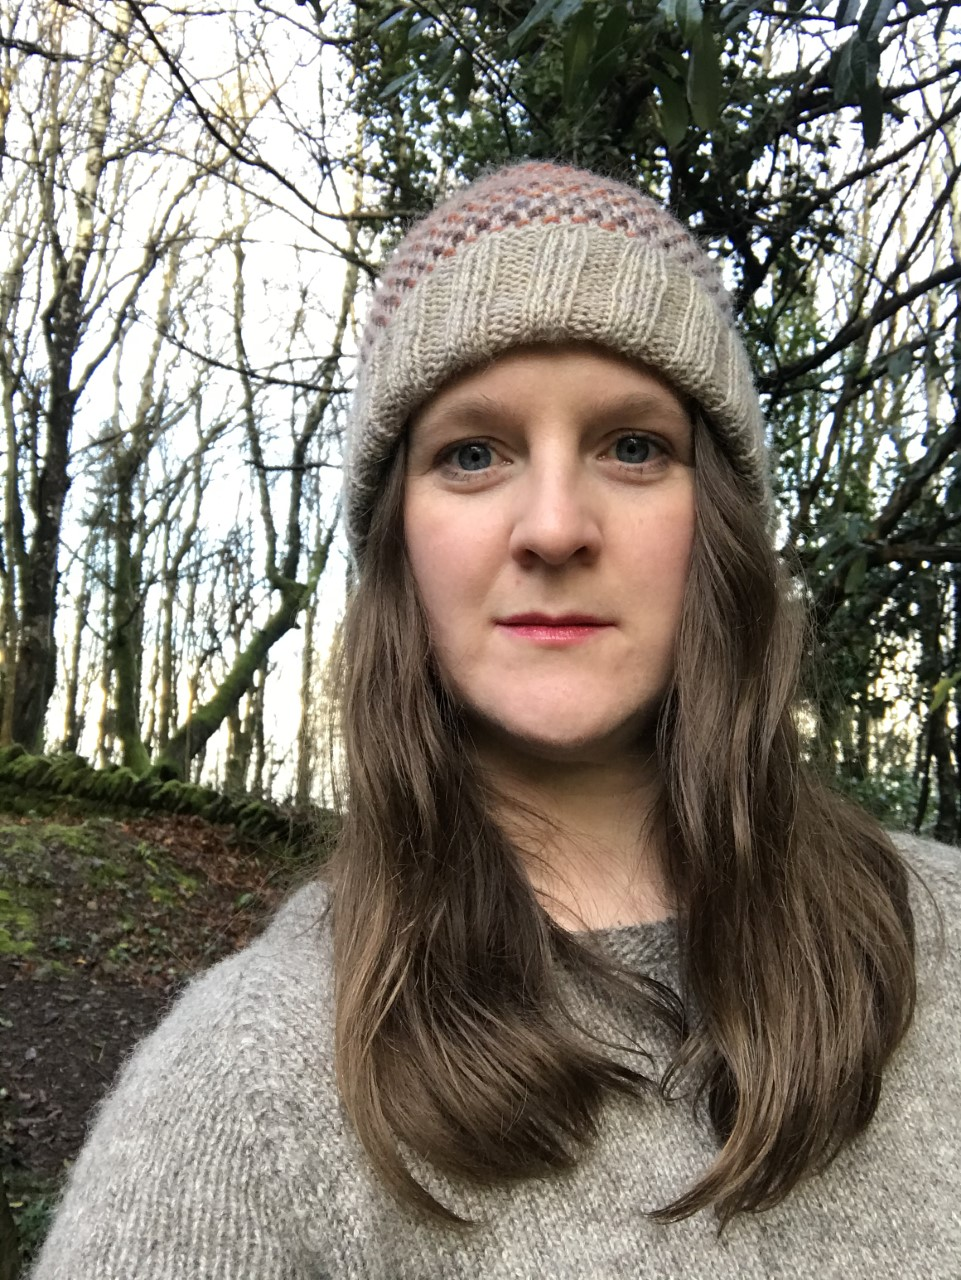 picture of helena, a brown haired white woman, staring at the camera,wearing a woolly hat, trees in the background